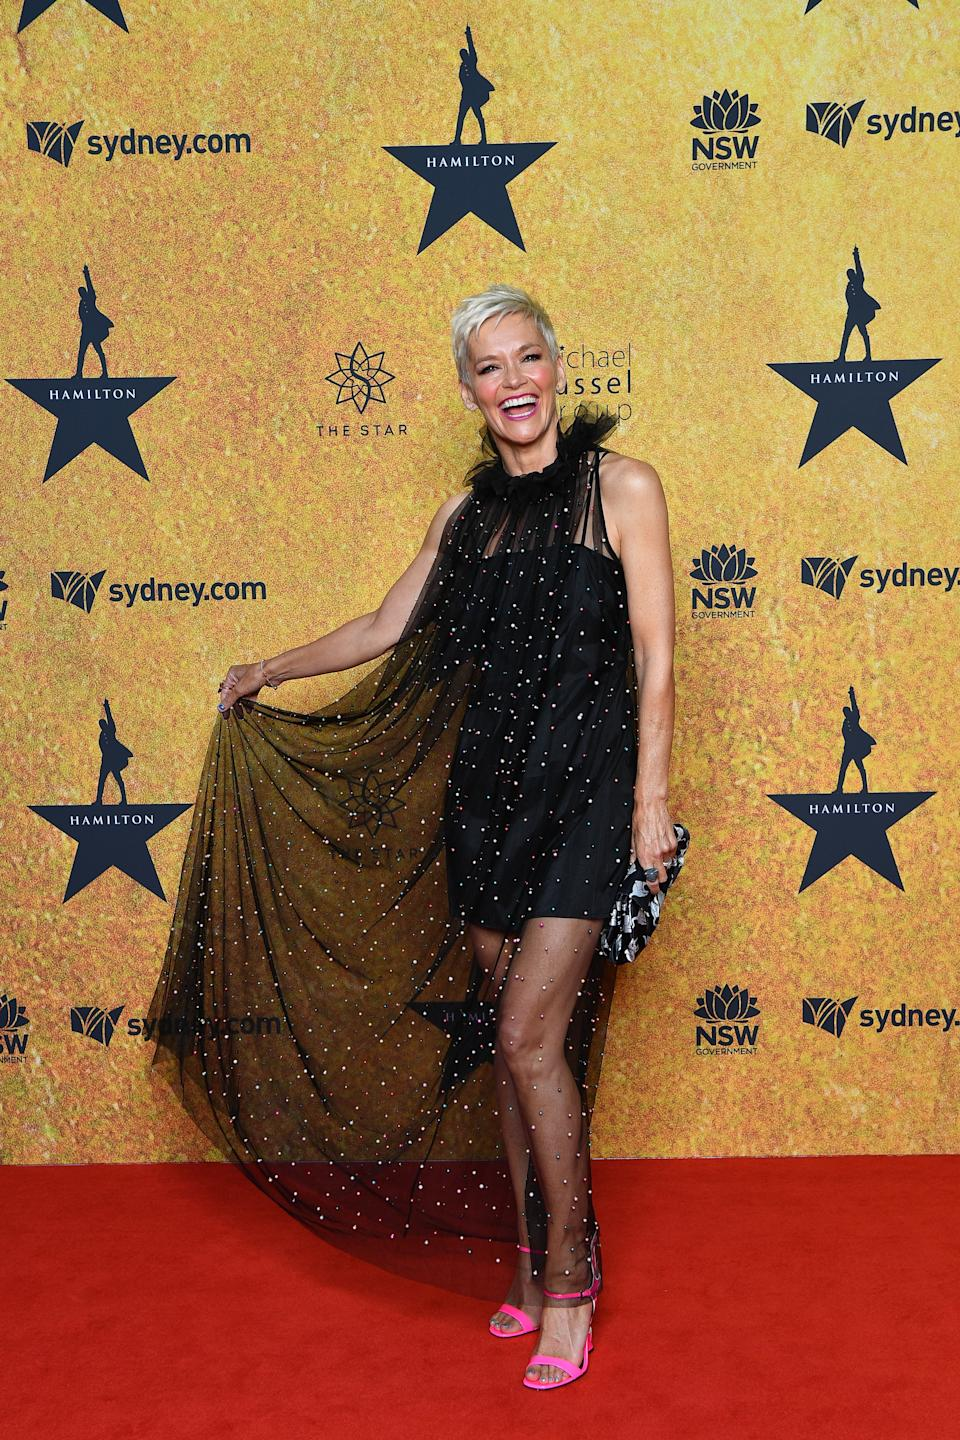 Jessica Rowe attends the Australian premiere of Hamilton at Lyric Theatre, Star City on March 27, 2021 in Sydney, Australia